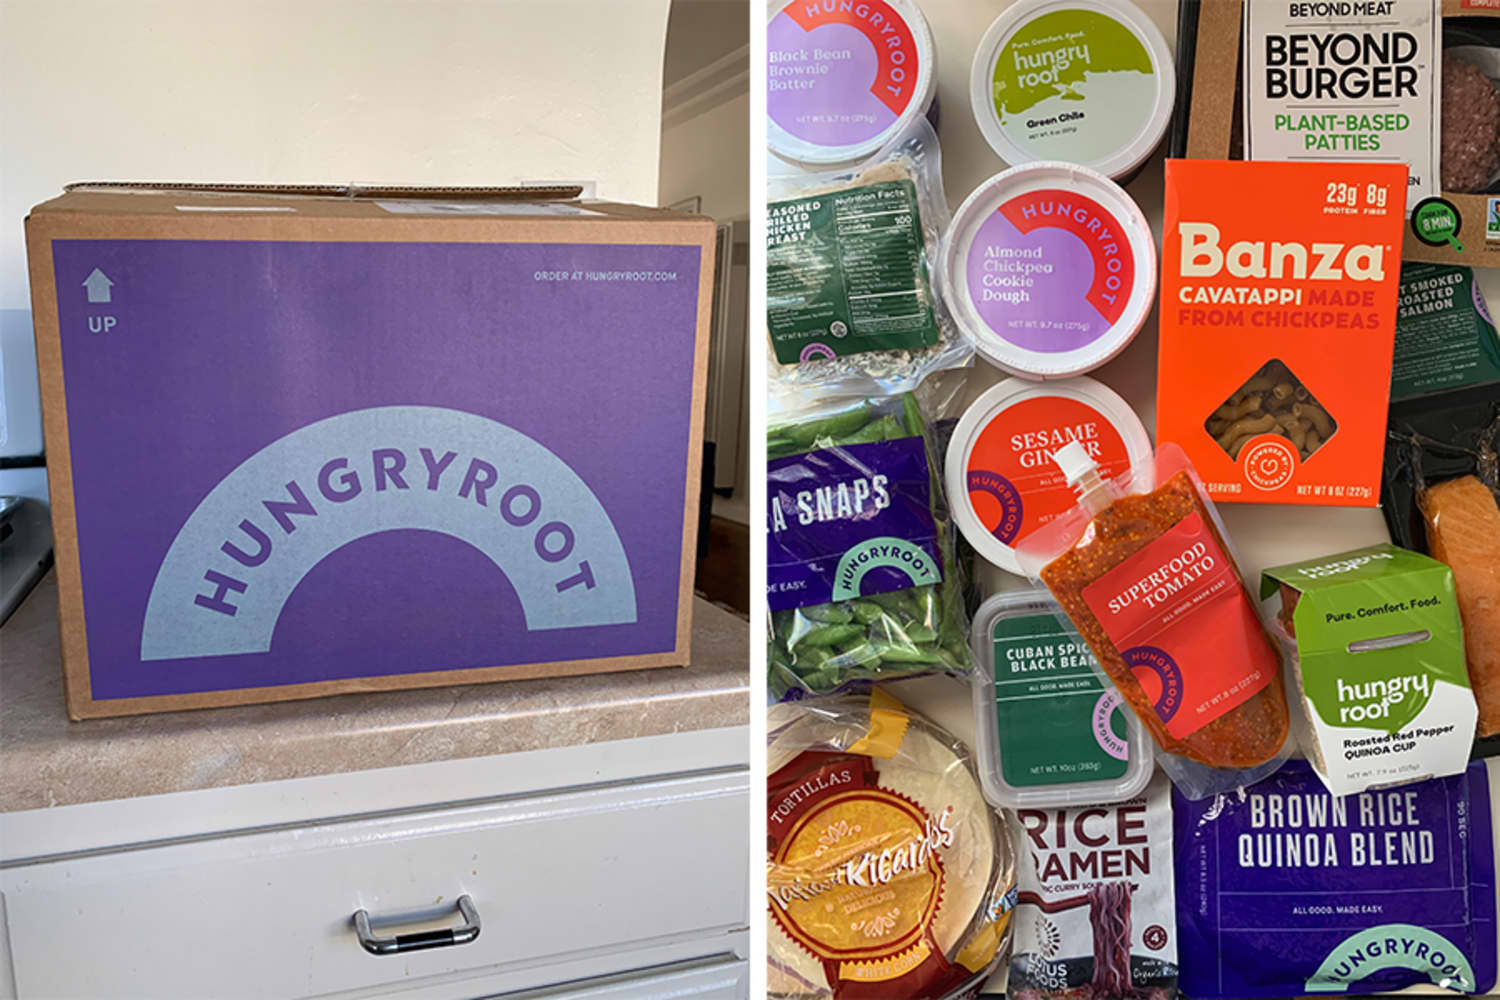 Hungryroot Is Like No Meal Kit Service You've Had Before, and That's Why It's the Best